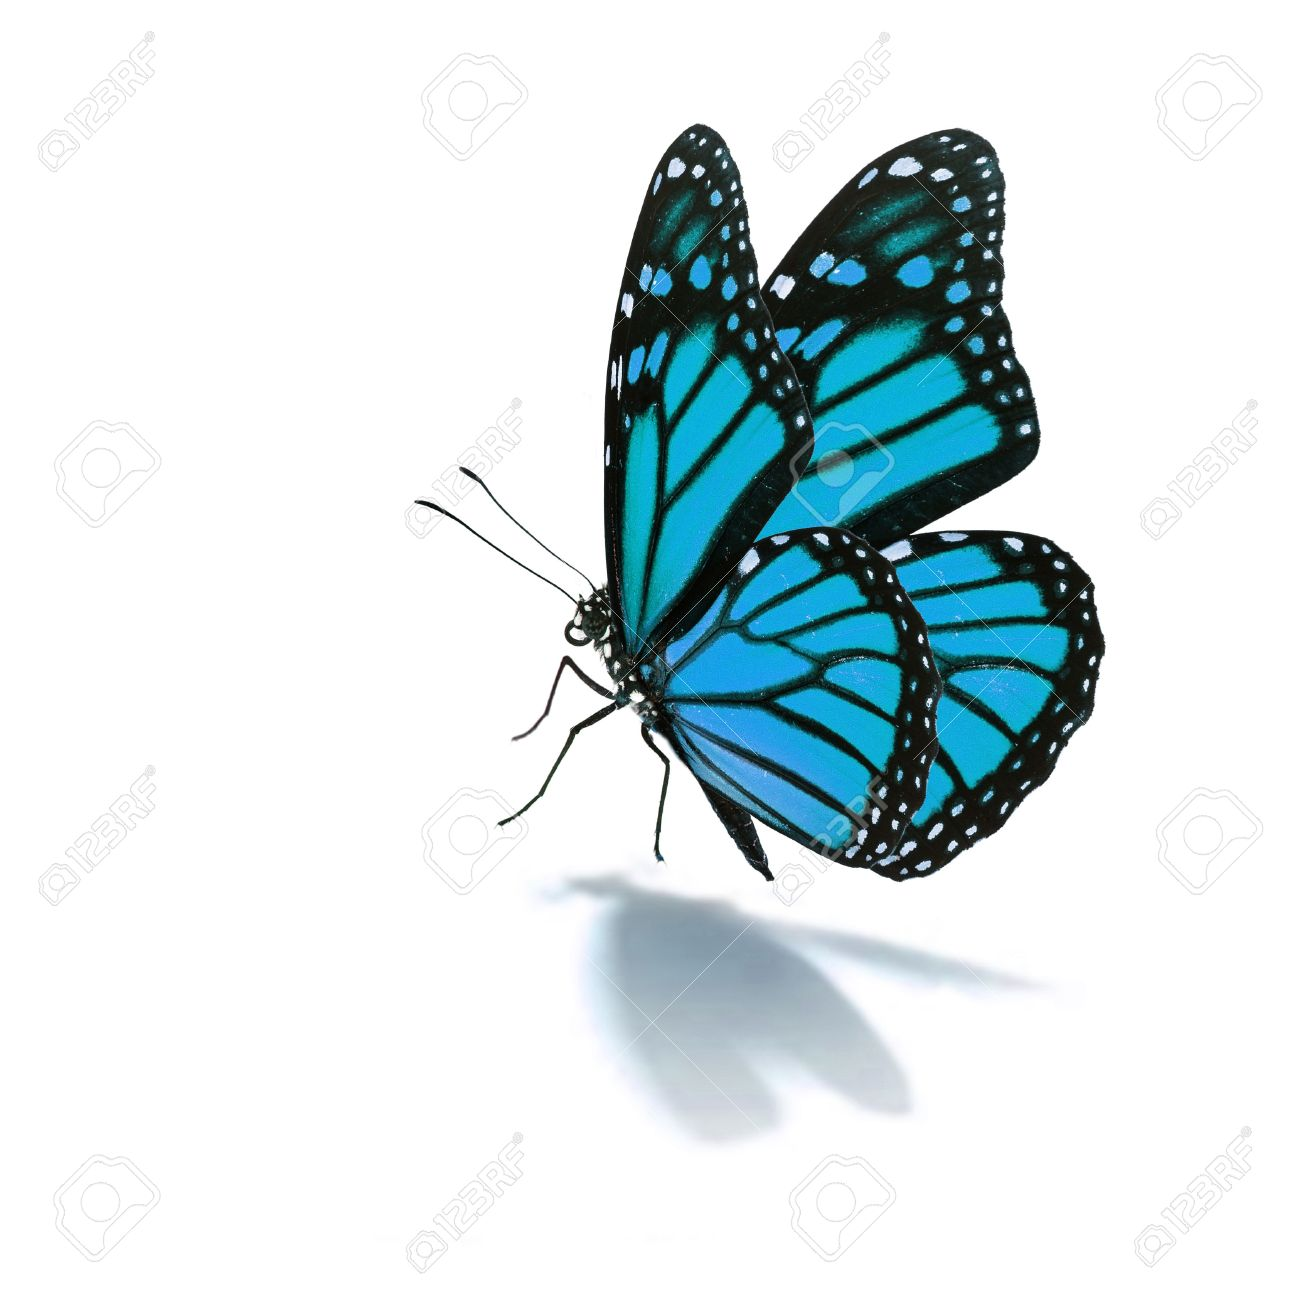 Beautiful blue butterfly isolated on white background - 38168915